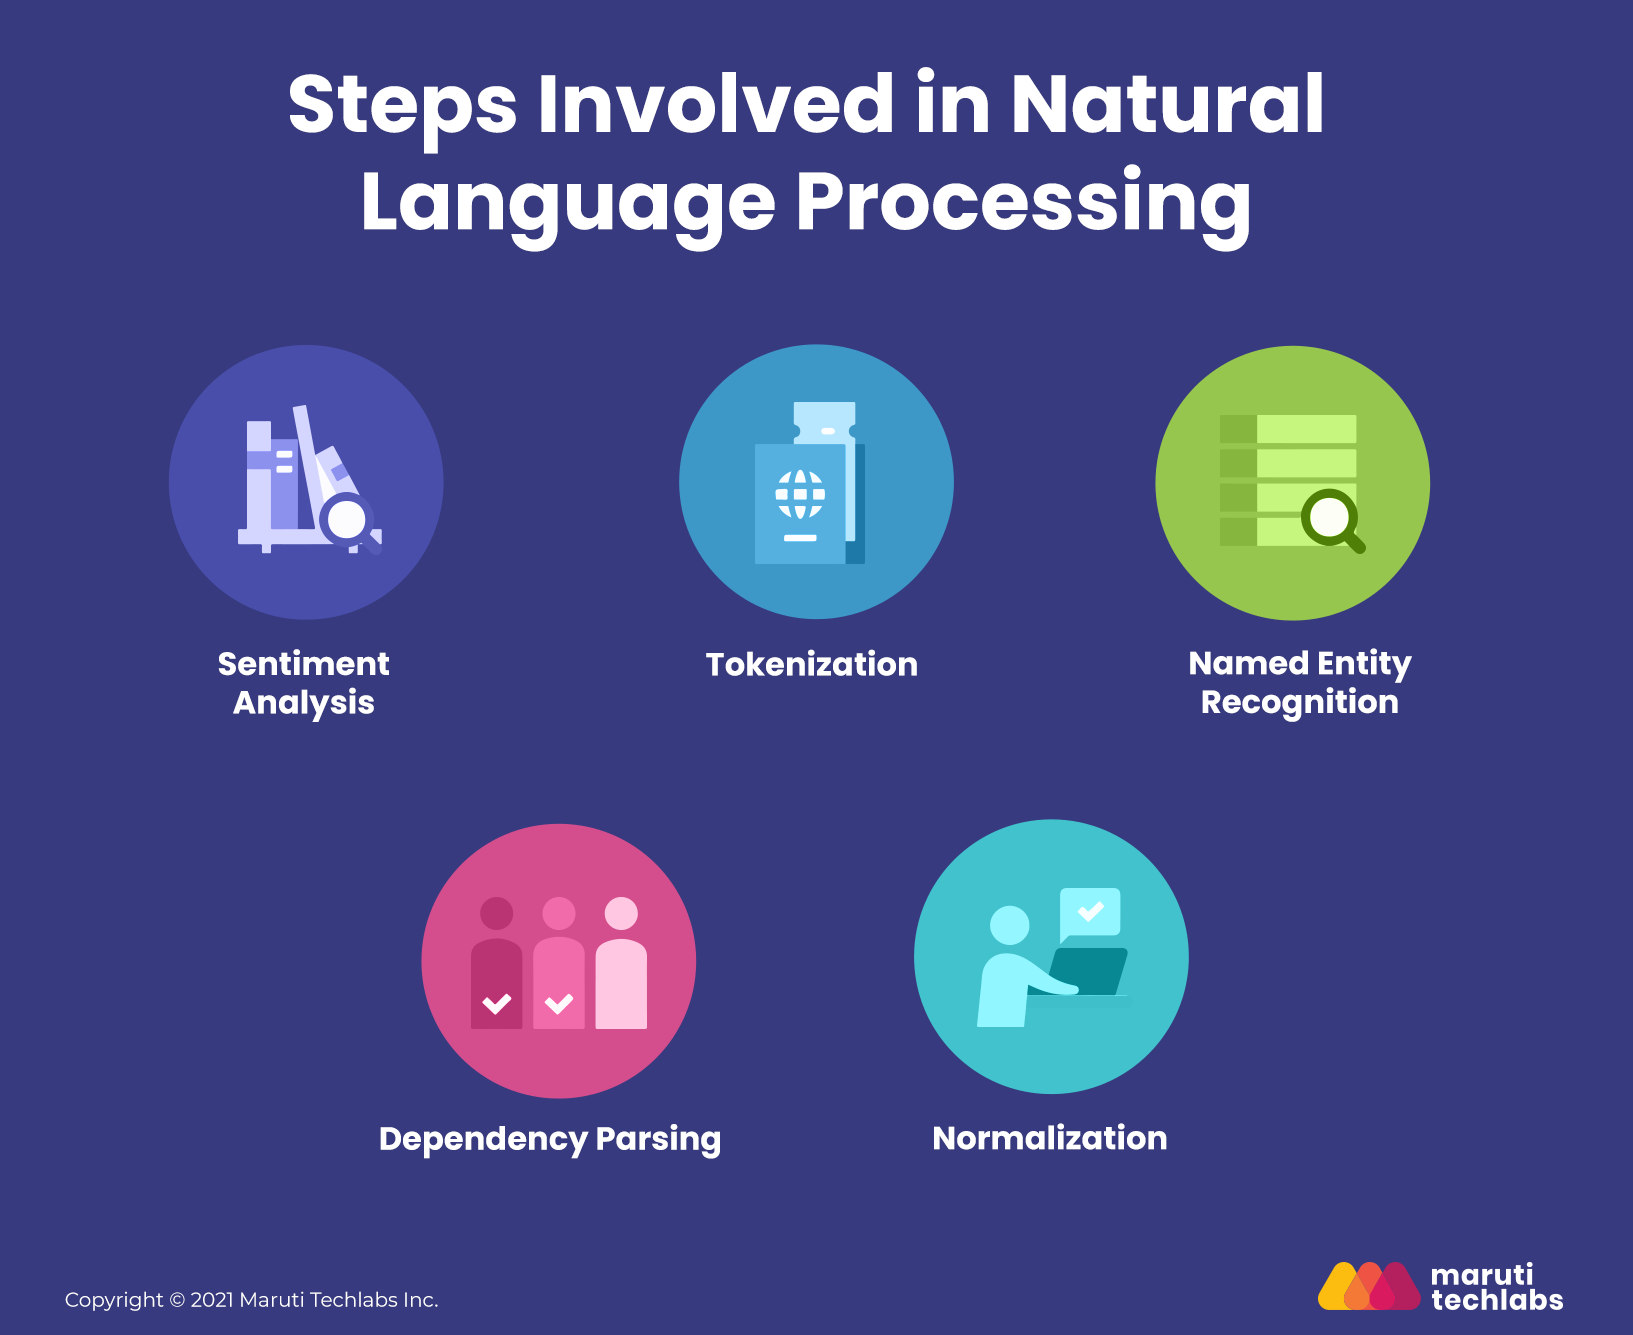 What is NLP (NATURAL LANGUAGE PROCESSING)?